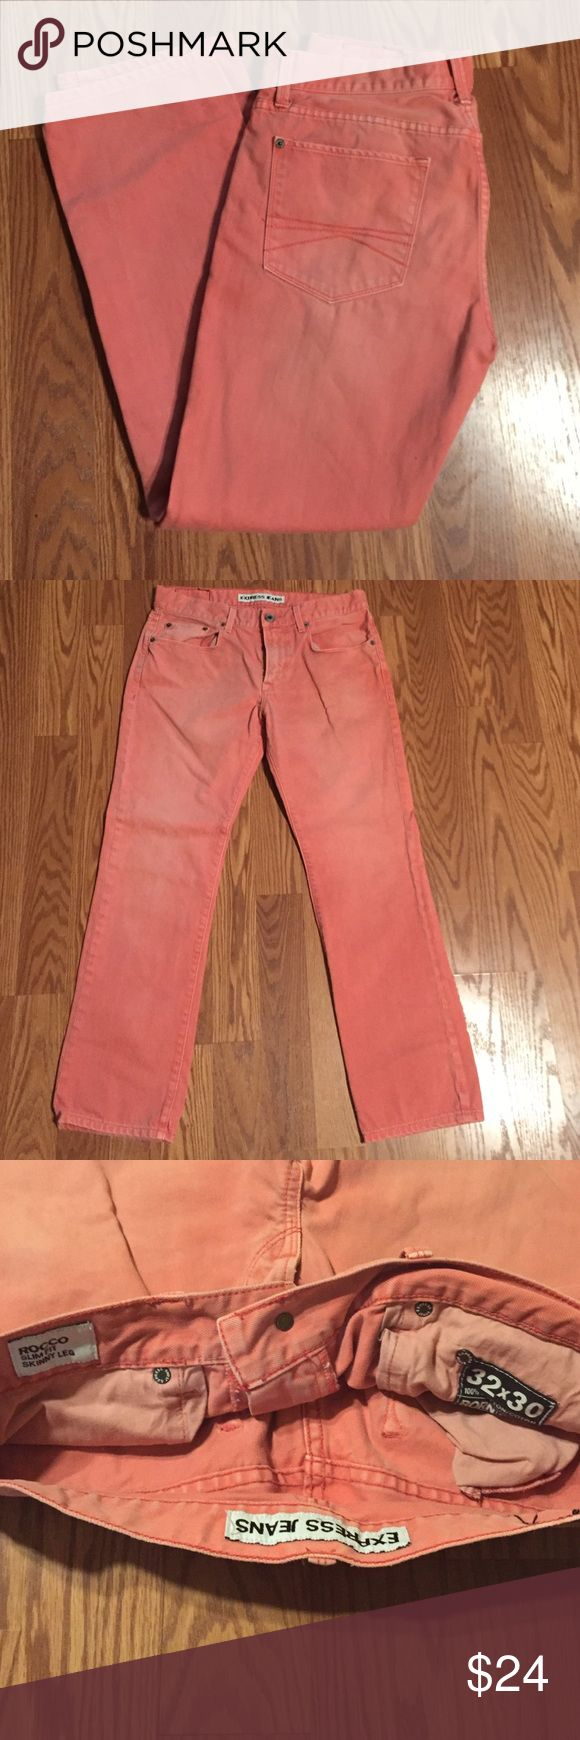 Express Men's Jeans Rocco Slim Fit skinny jeans size 32/30 (salmon) no ware or tear Express Jeans Skinny